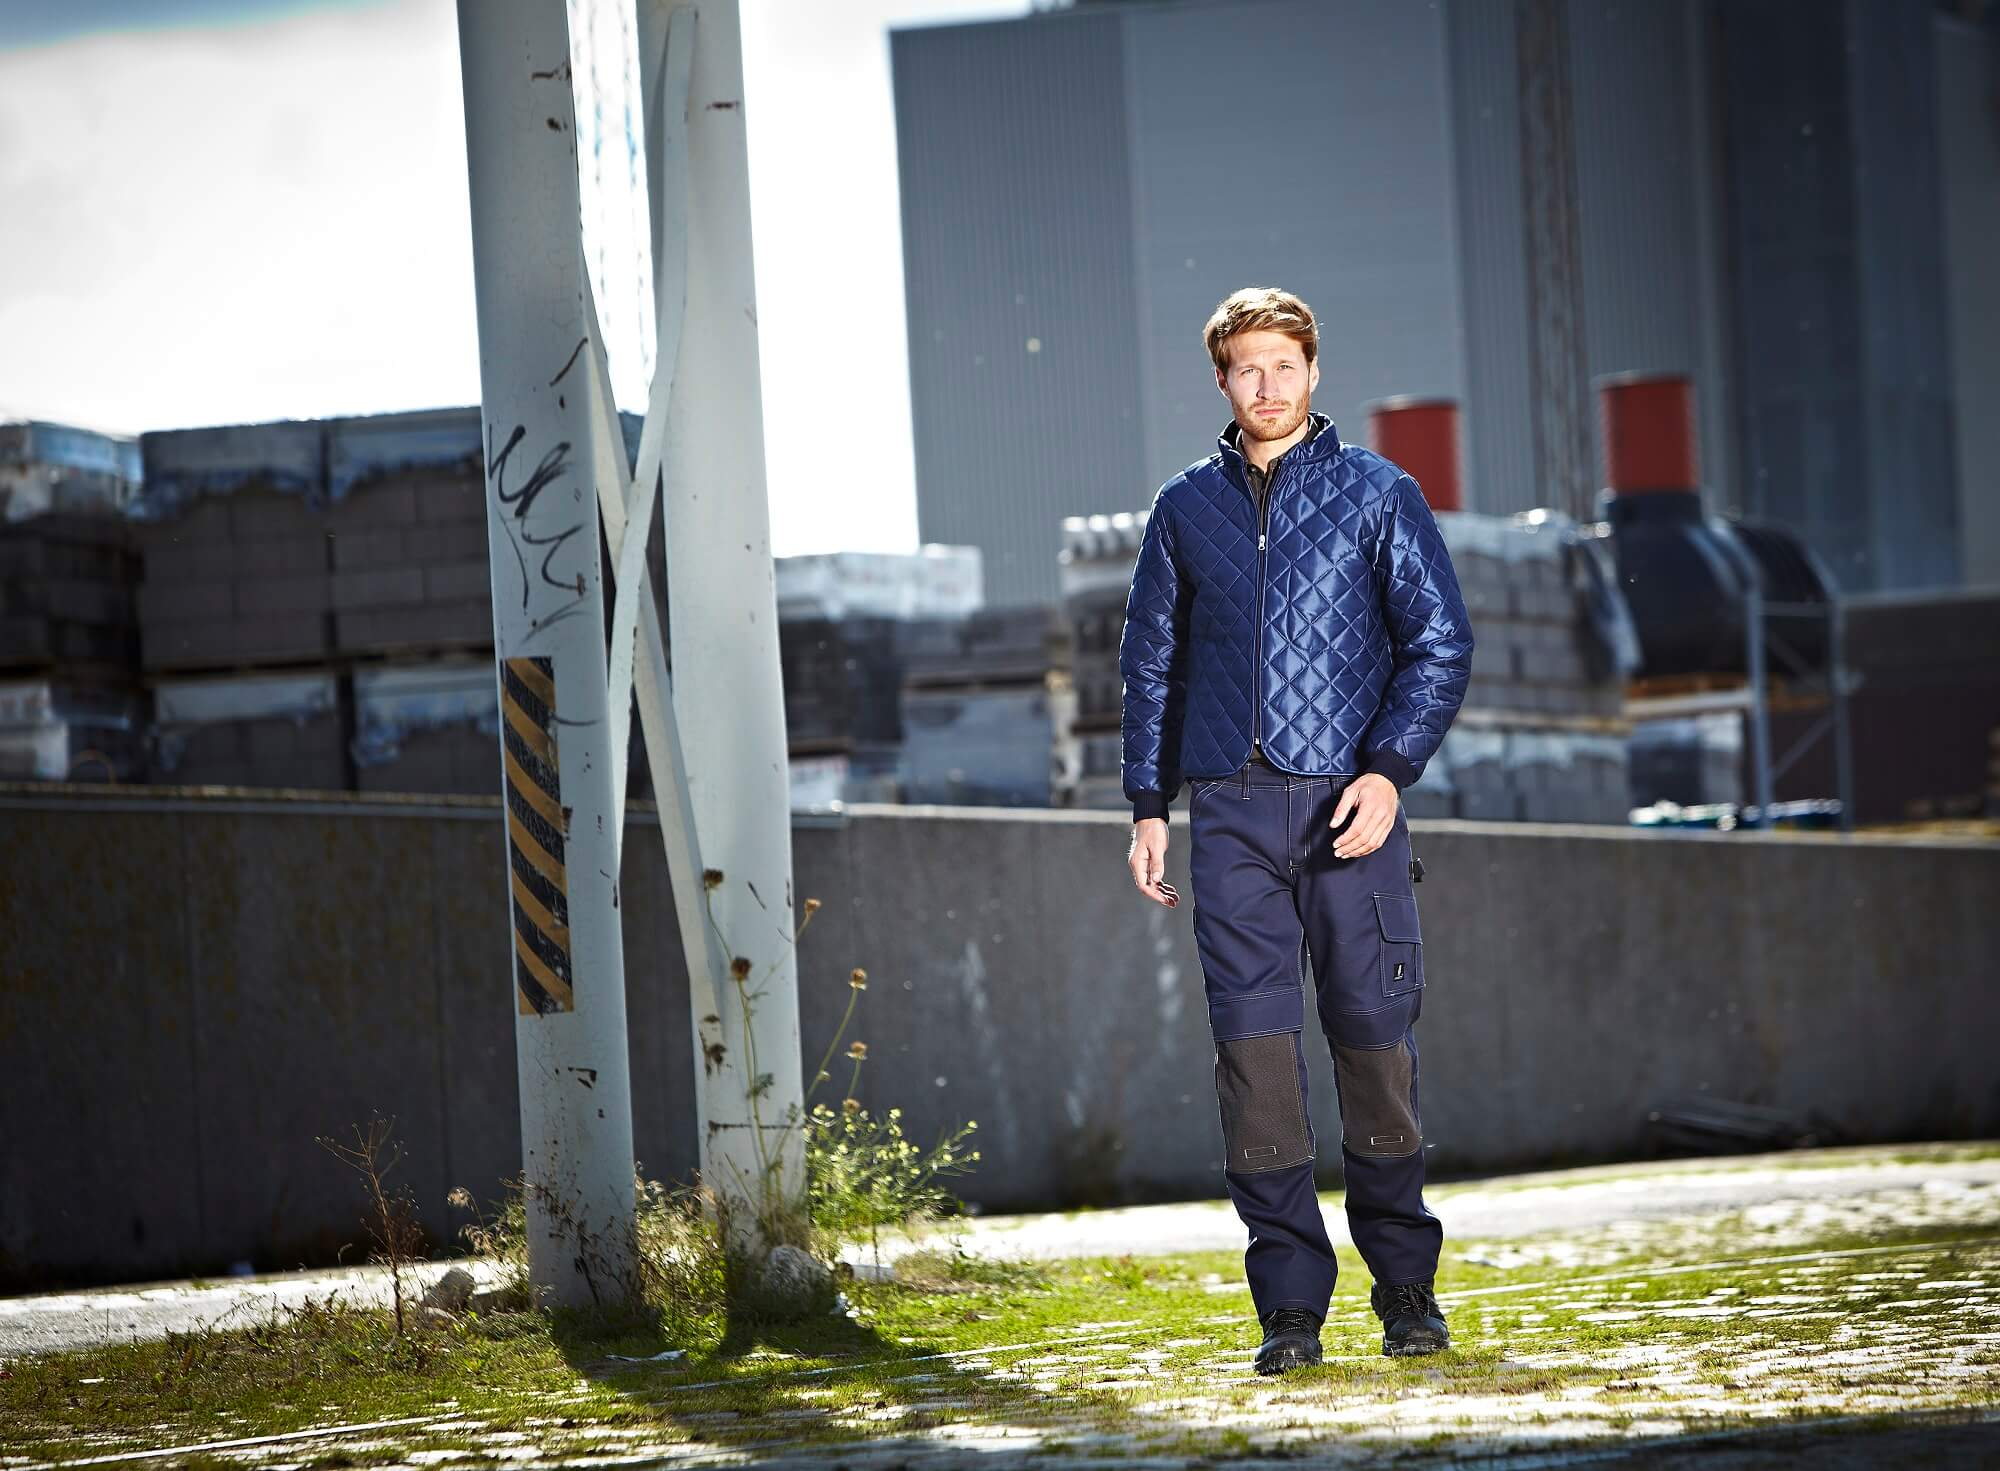 Environment - Thermal Jacket & Work Trousers - Navy